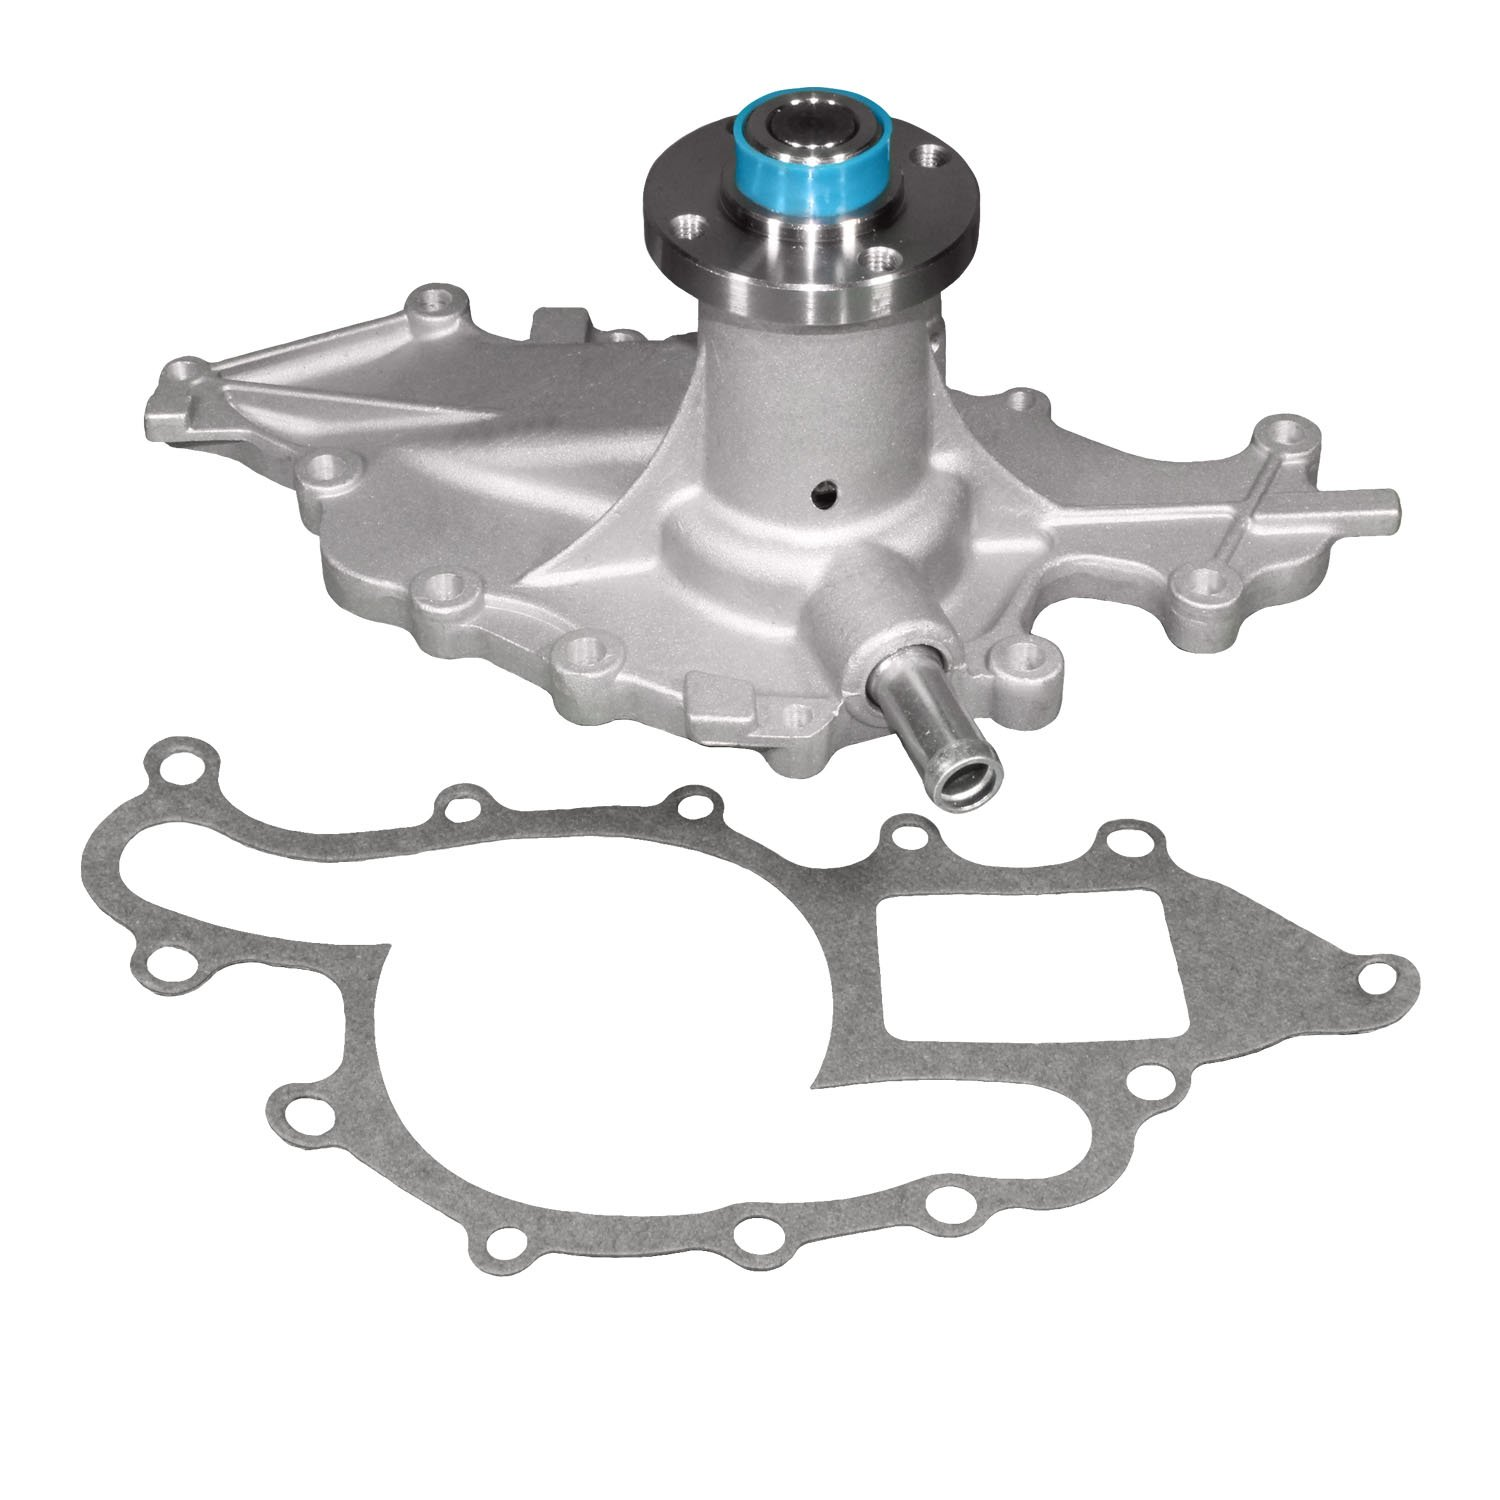 ACDelco 252-470 Professional Water Pump Kit